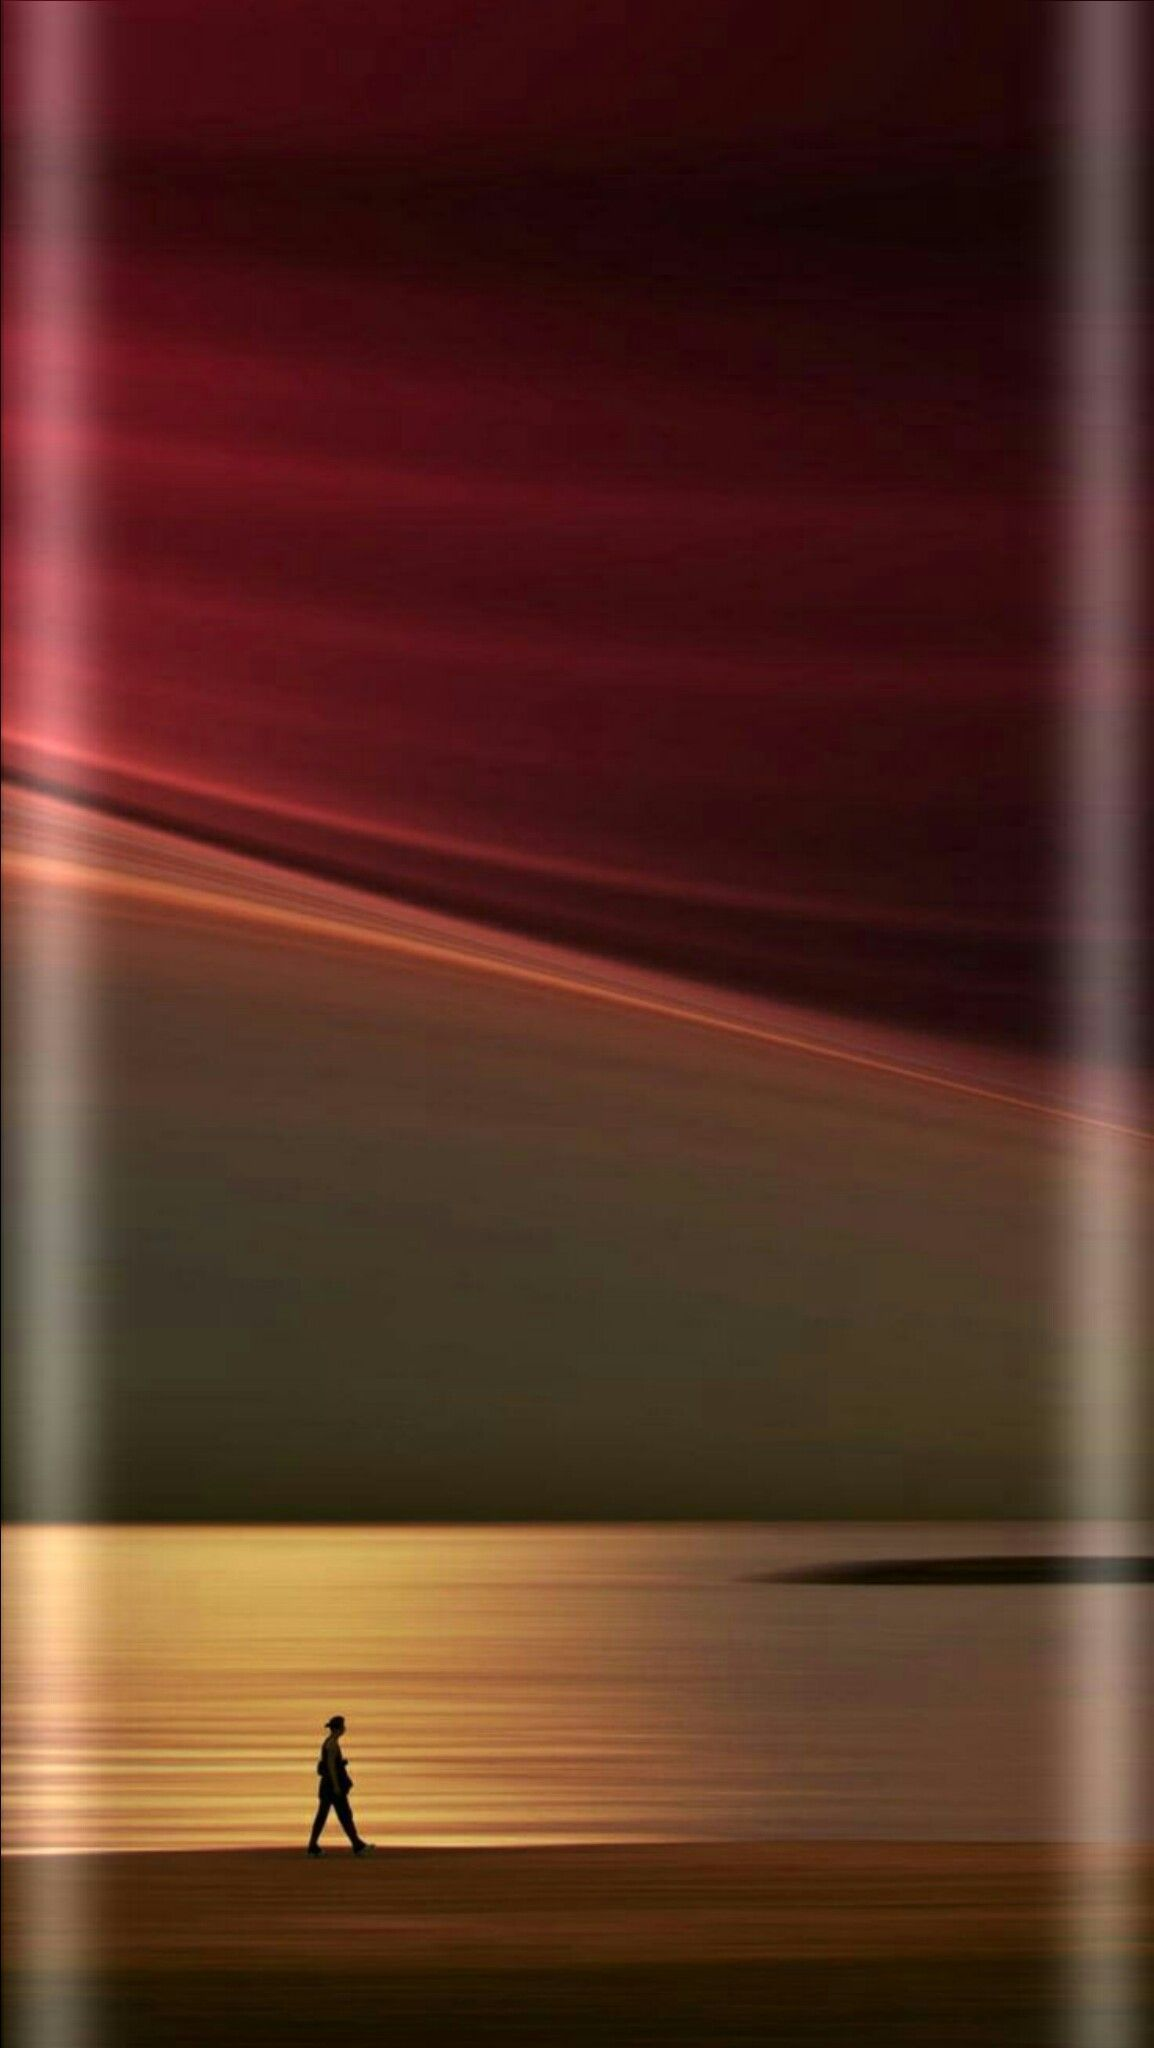 Download Top Abstract Phone Wallpaper HD Today by imgur.com